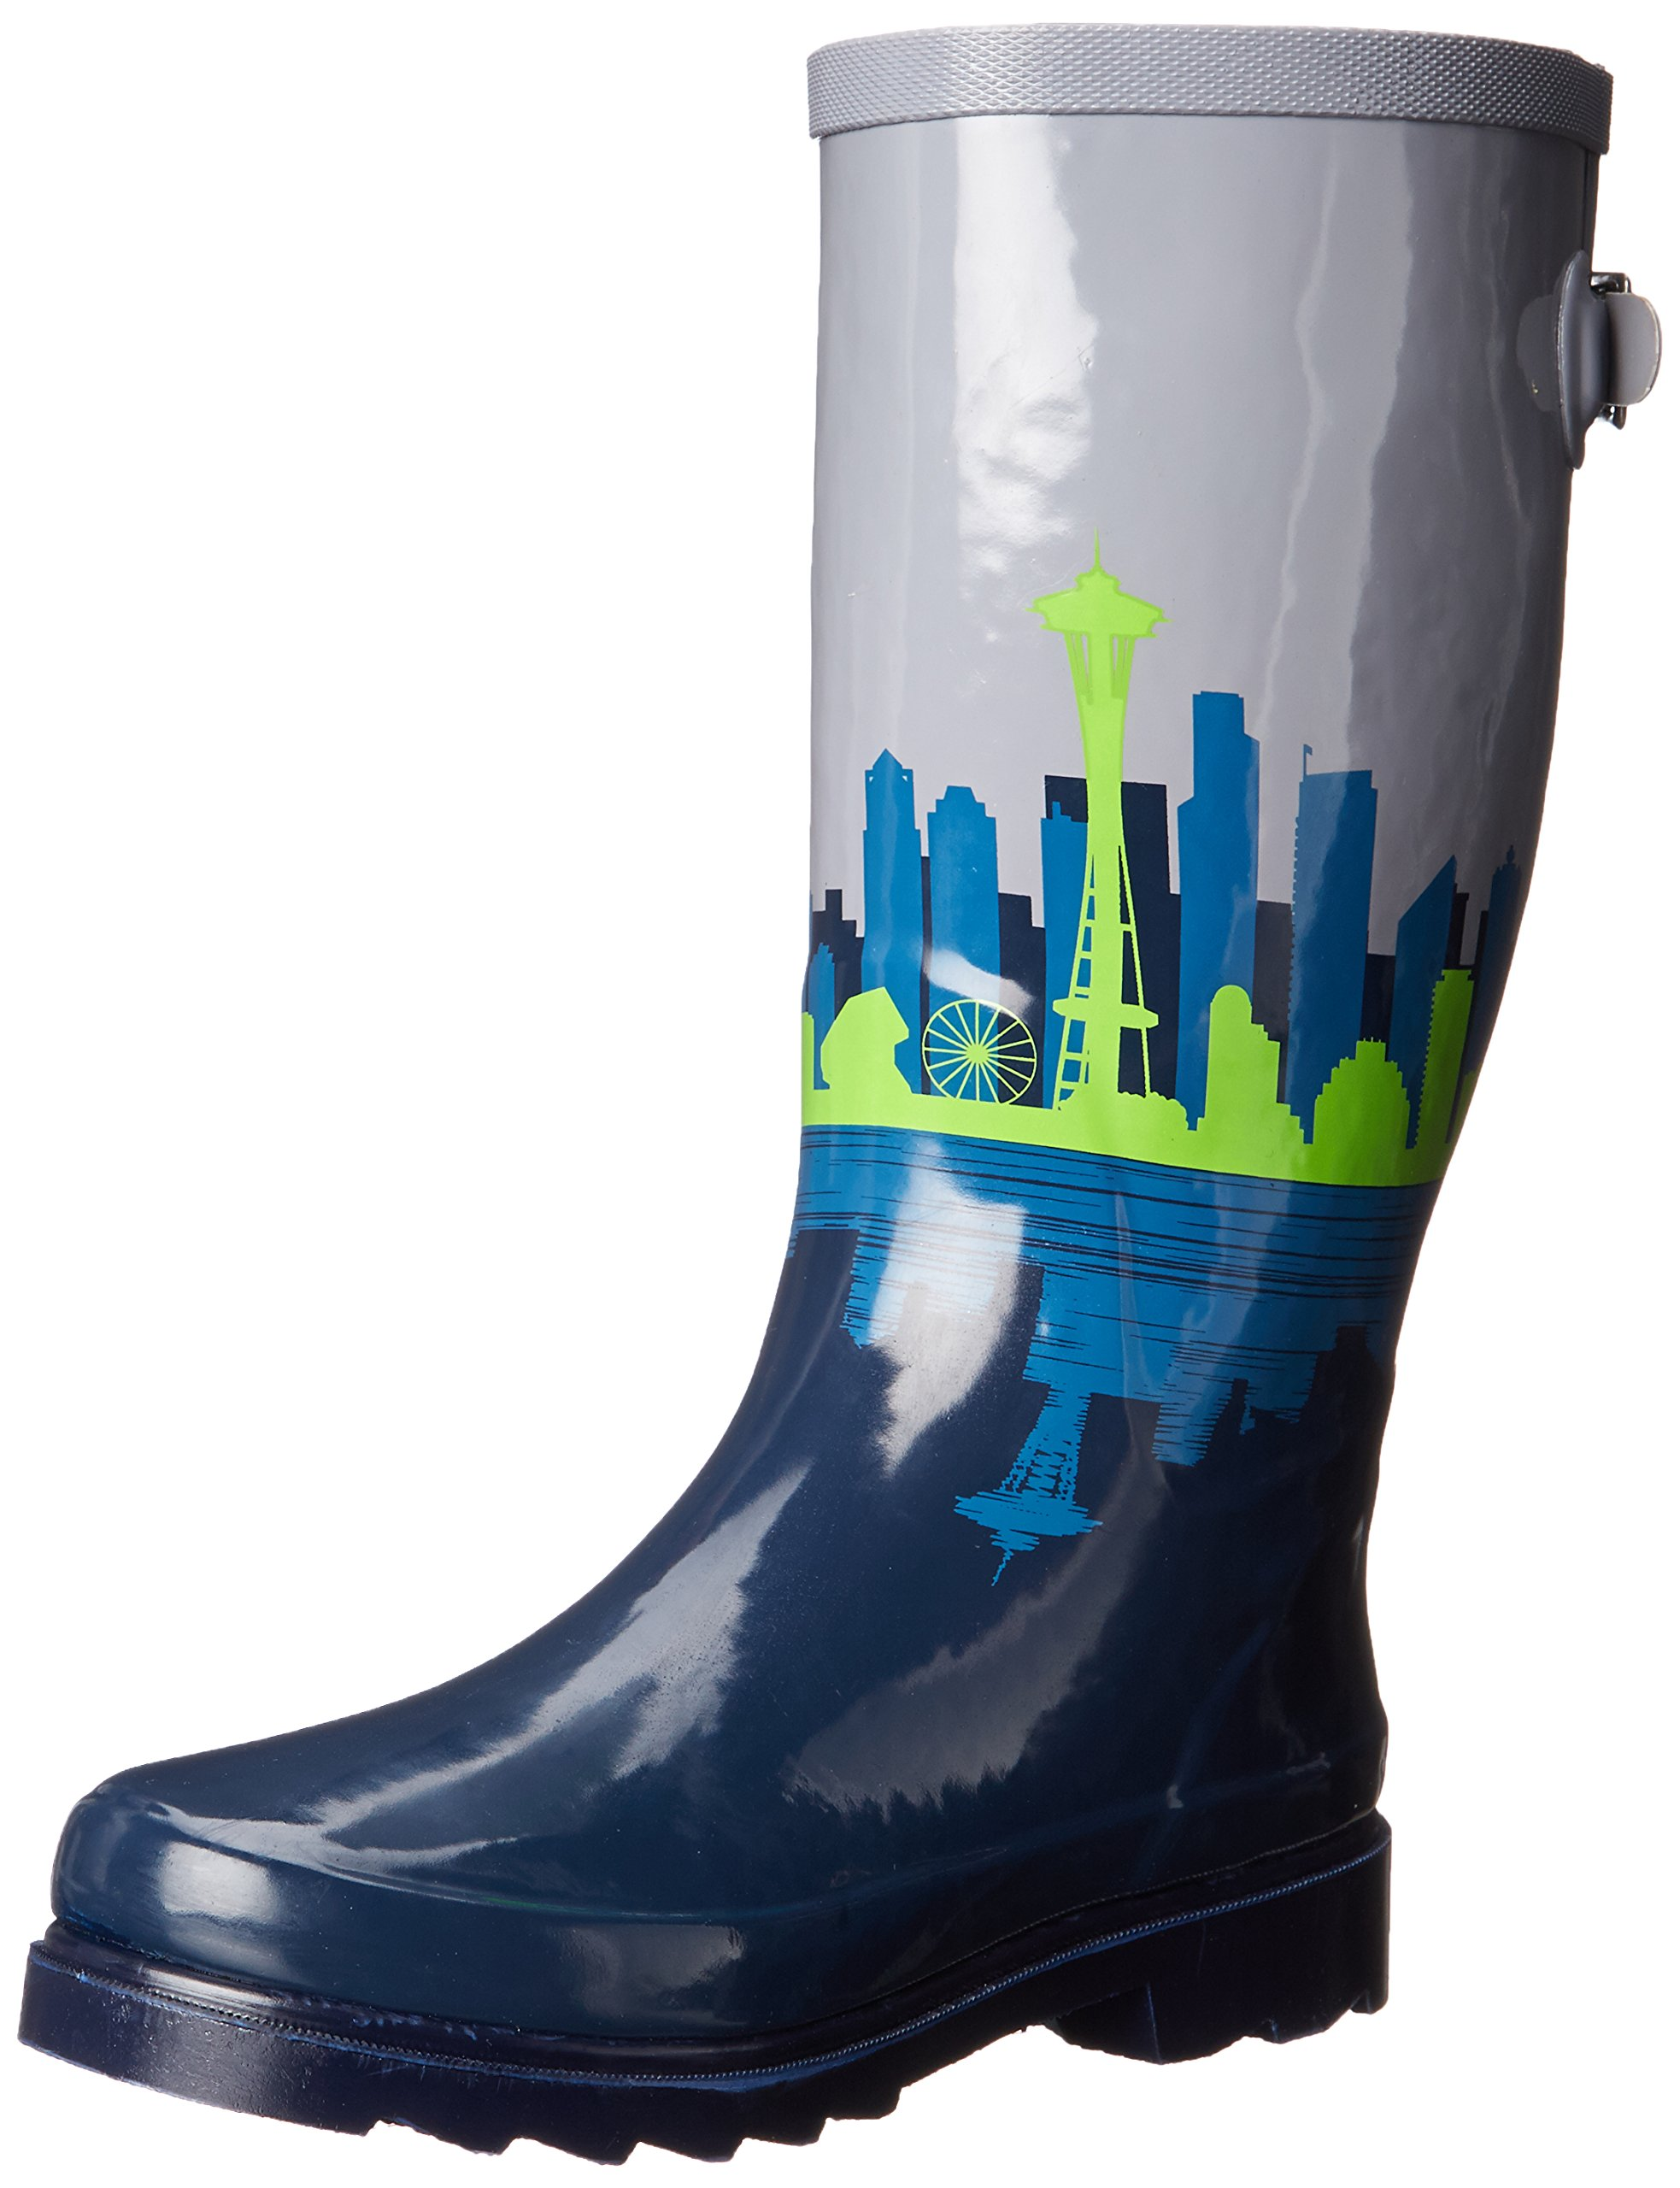 Chooka Women's Tall Rain Boot, Skyline, 8 M US